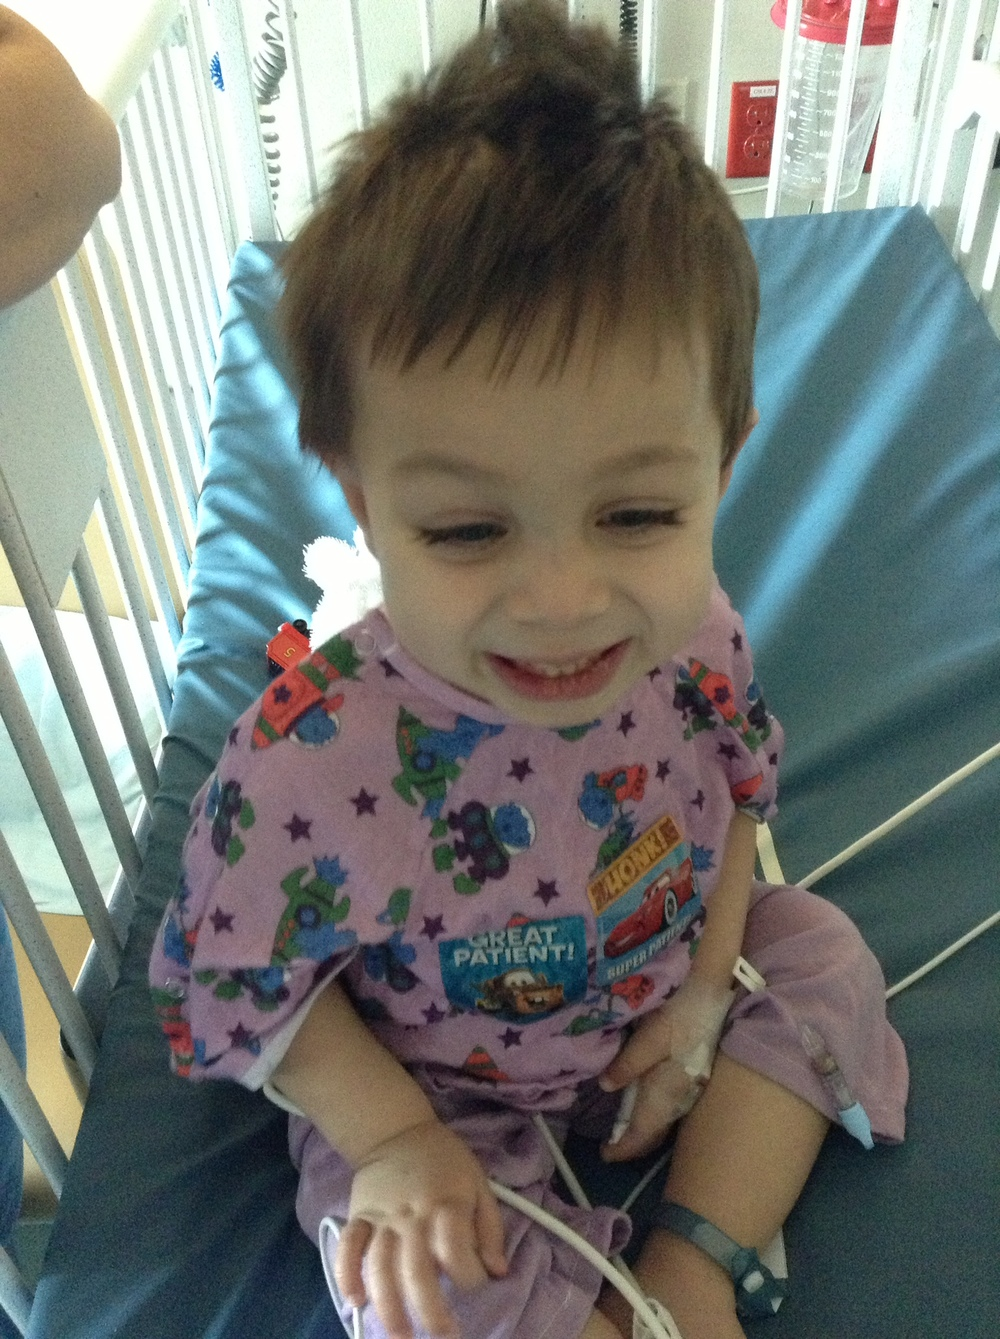 July also marks the three year anniversary since this stud's transplant.